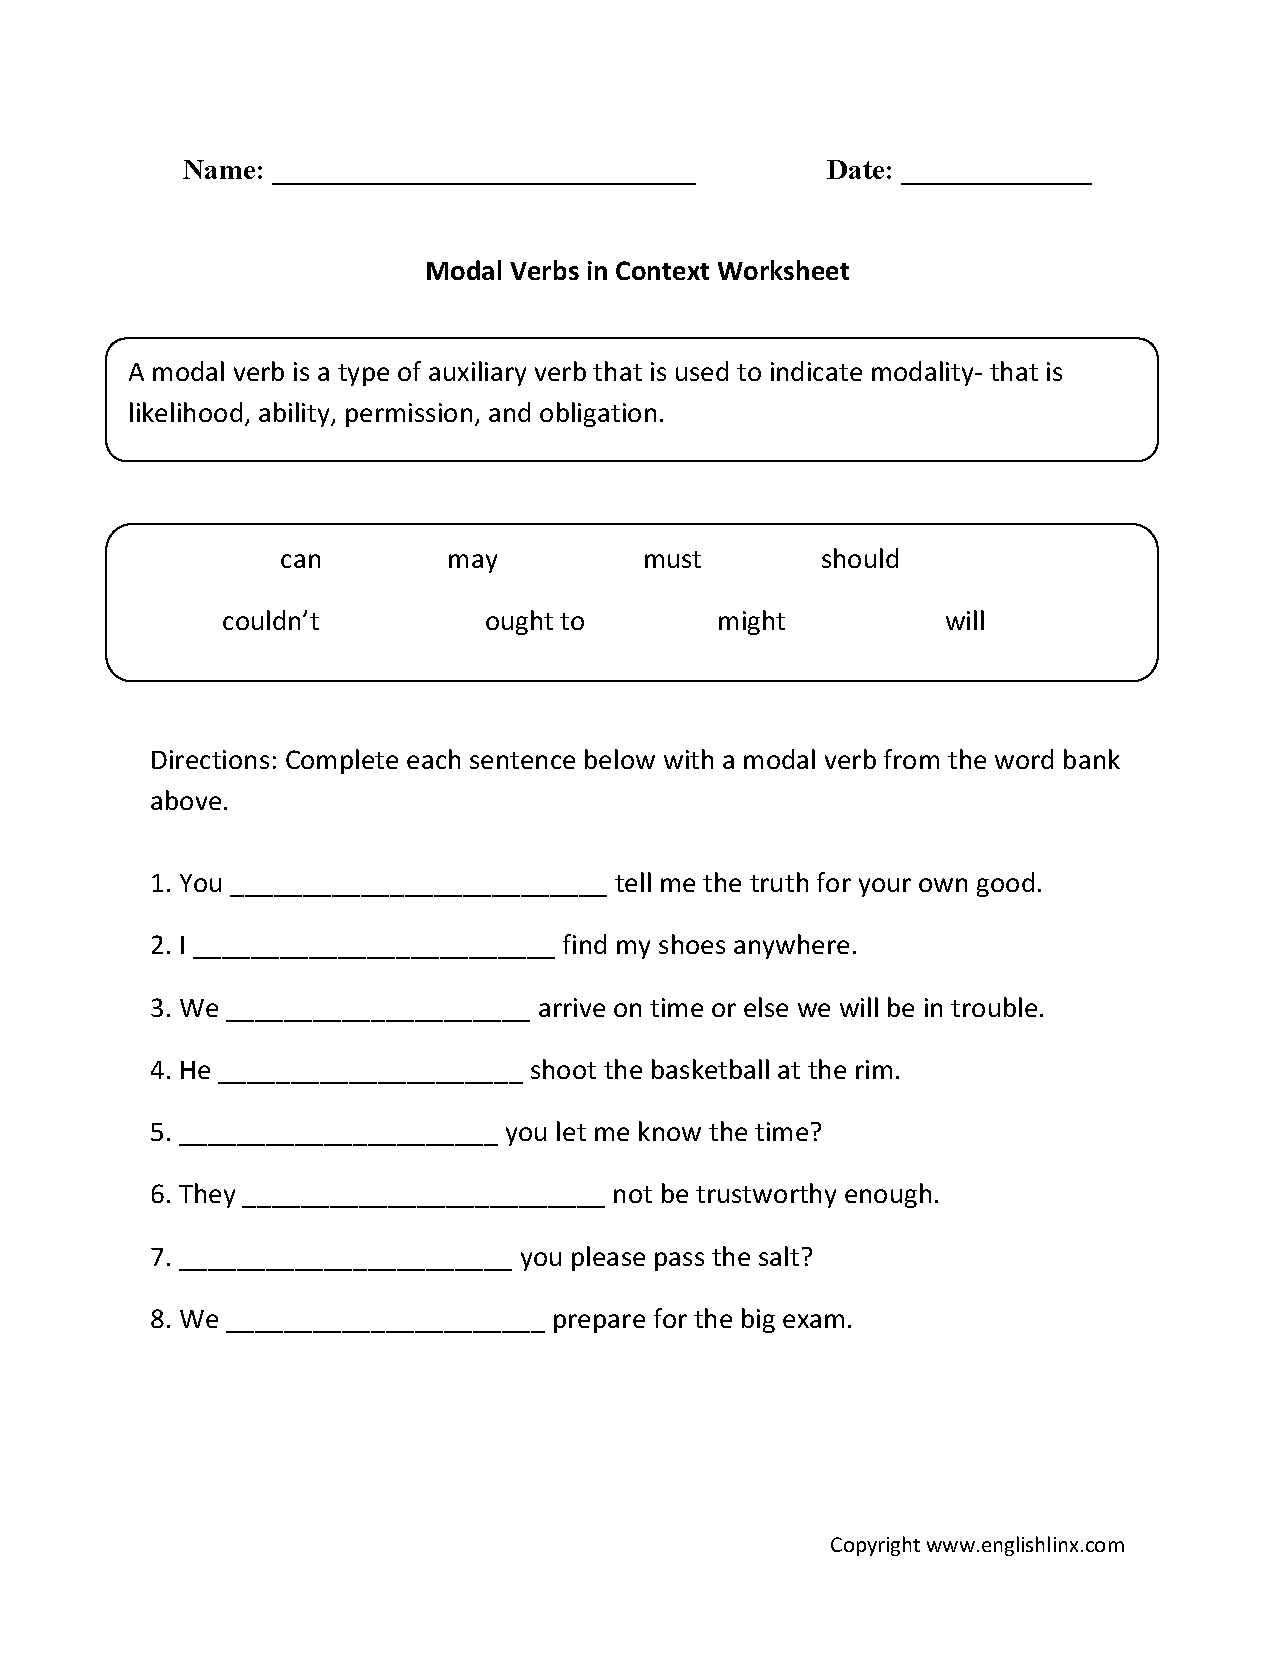 Aldiablosus  Outstanding Worksheet For Verbs  Coffemix With Marvelous Englishlinxcom  Verbs Worksheets With Beauteous Gender Of Nouns Worksheet Also Addition Facts Worksheet Generator In Addition Pre Nursery Worksheets And Teaching Time To Kids Worksheets As Well As Online Worksheets For Kids Additionally Classroom Objects Worksheets From Coffemixcom With Aldiablosus  Marvelous Worksheet For Verbs  Coffemix With Beauteous Englishlinxcom  Verbs Worksheets And Outstanding Gender Of Nouns Worksheet Also Addition Facts Worksheet Generator In Addition Pre Nursery Worksheets From Coffemixcom